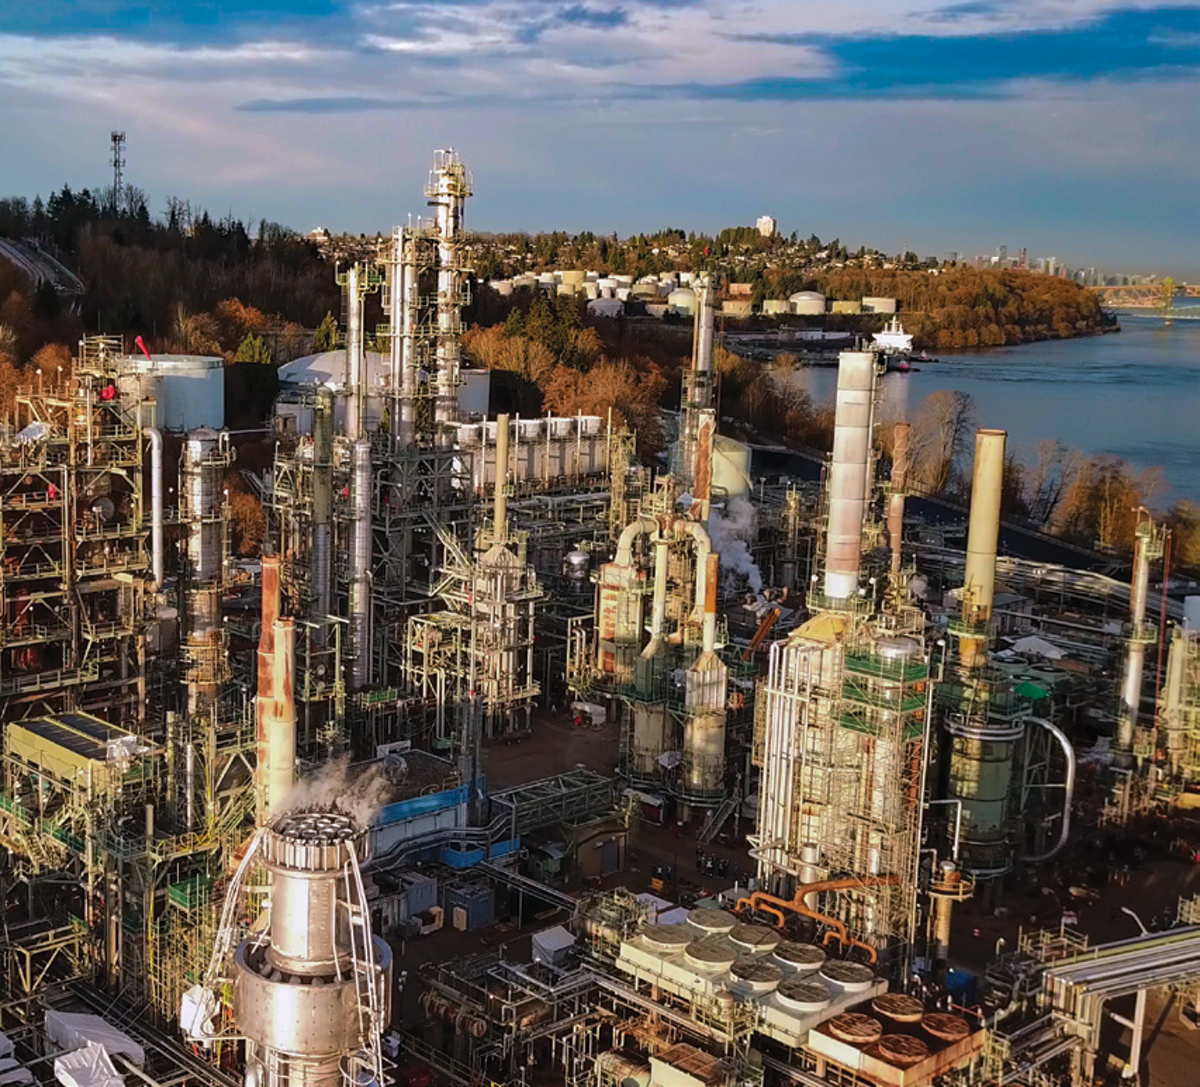 Parkland Fuel Wrapping Up Burnaby Refinery Turnaround